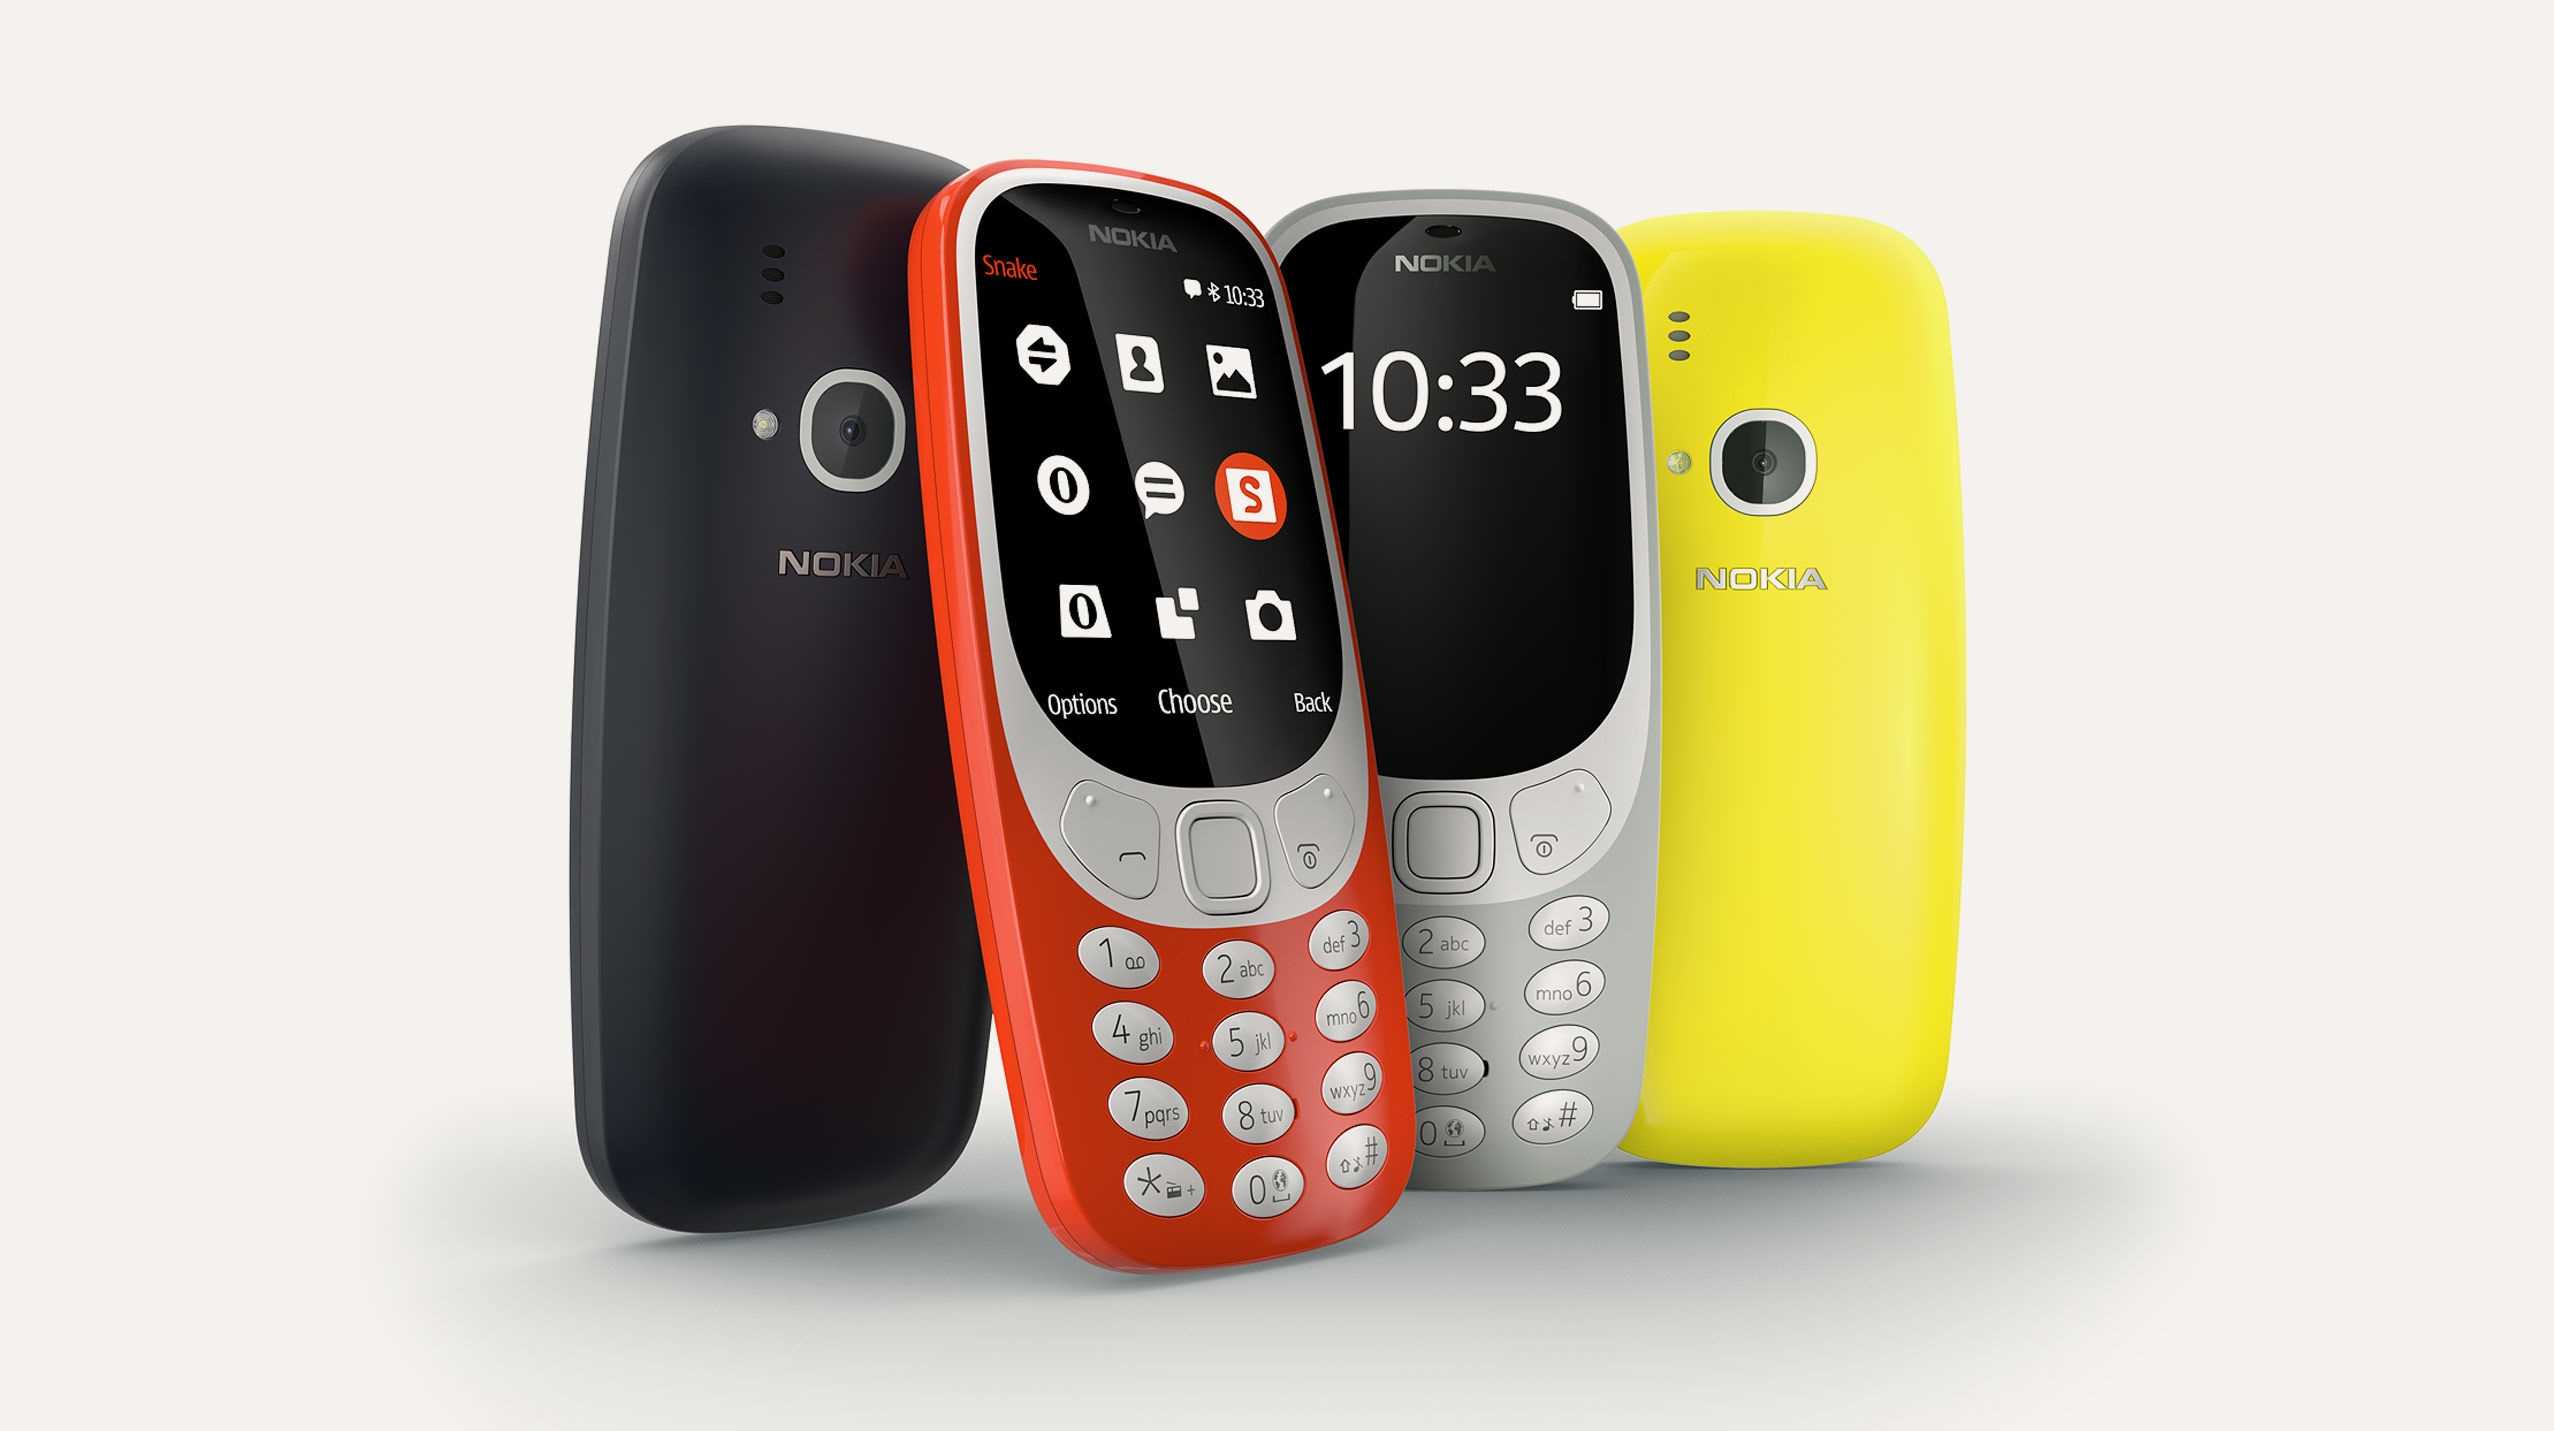 It's coming... Nokia announce release date for new 3310 in UK